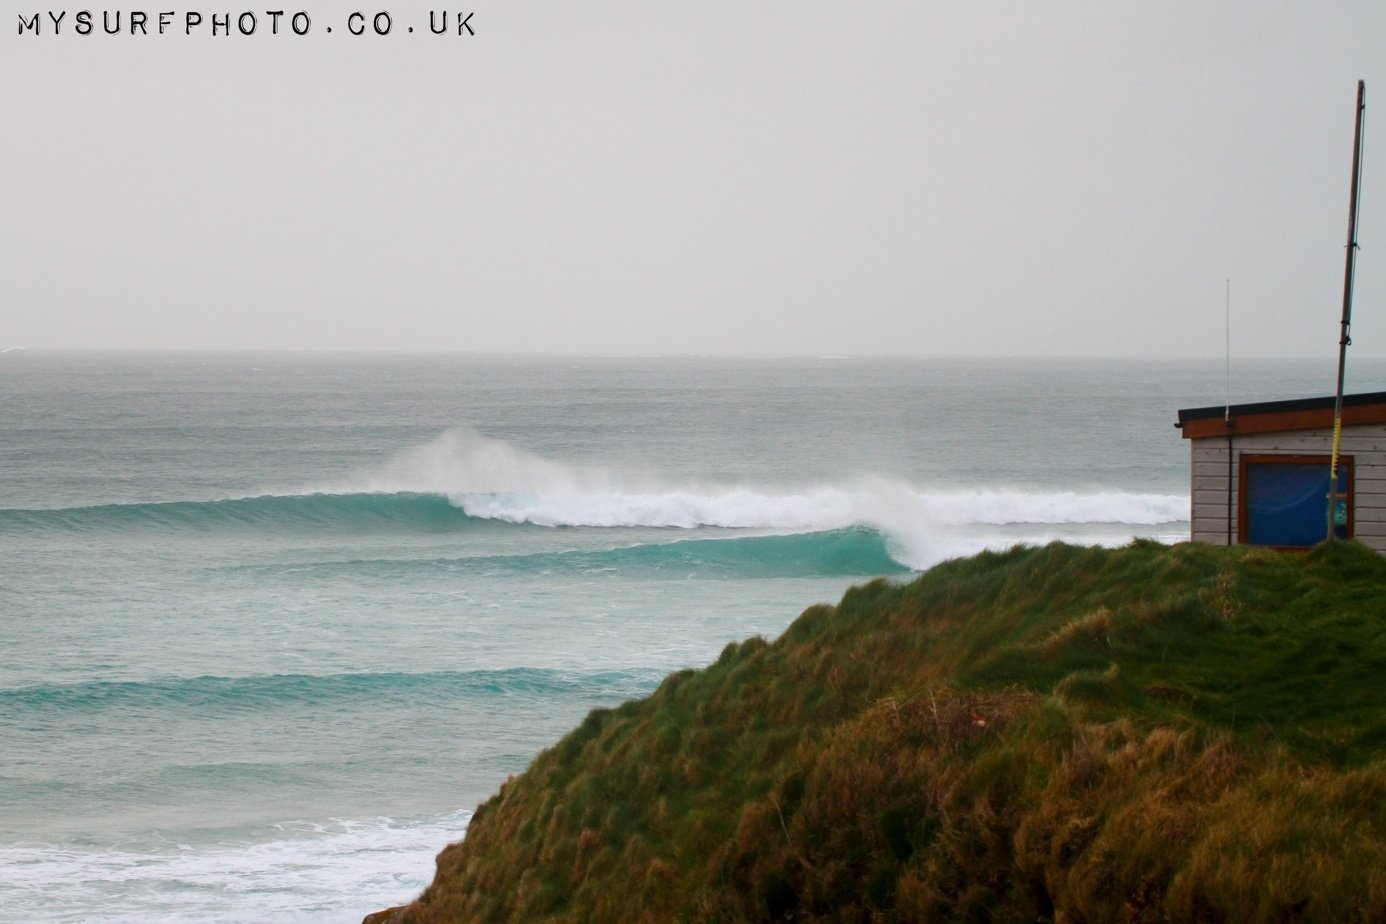 MySurfPhoto.co.uk's photo of Gwithian